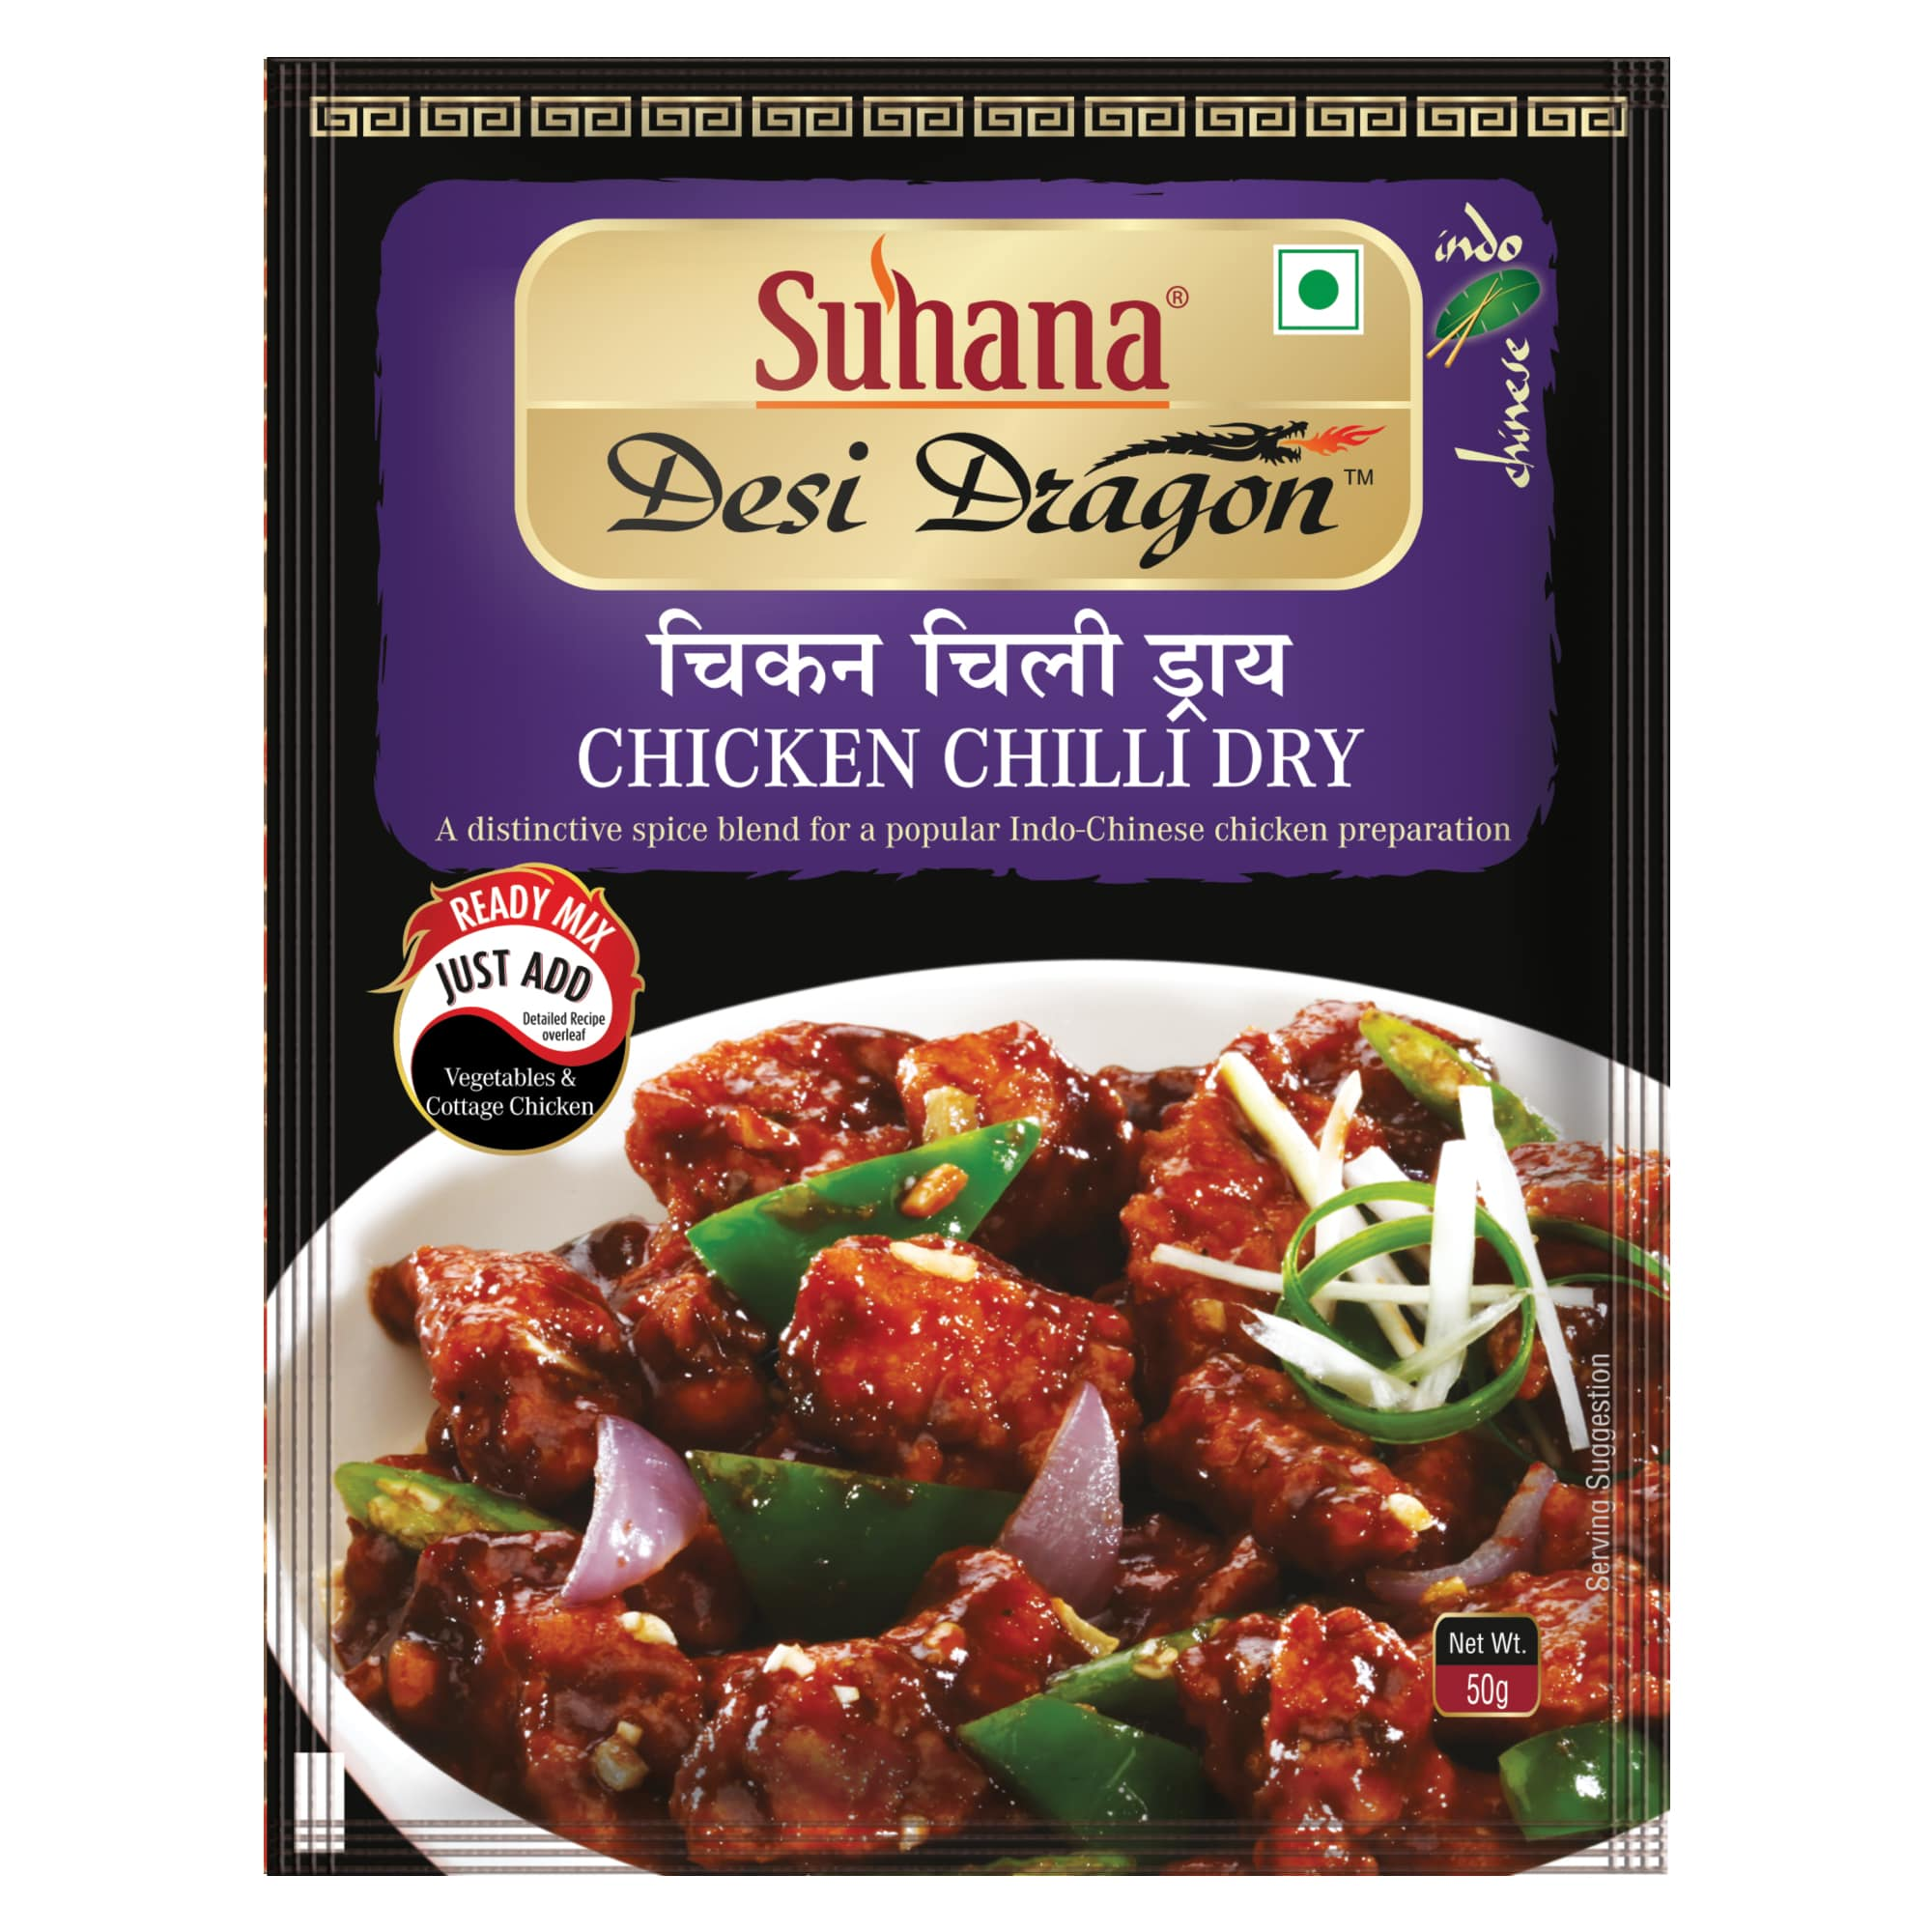 Suhana Chicken Chilli (Dry) Mix 50g Pouch